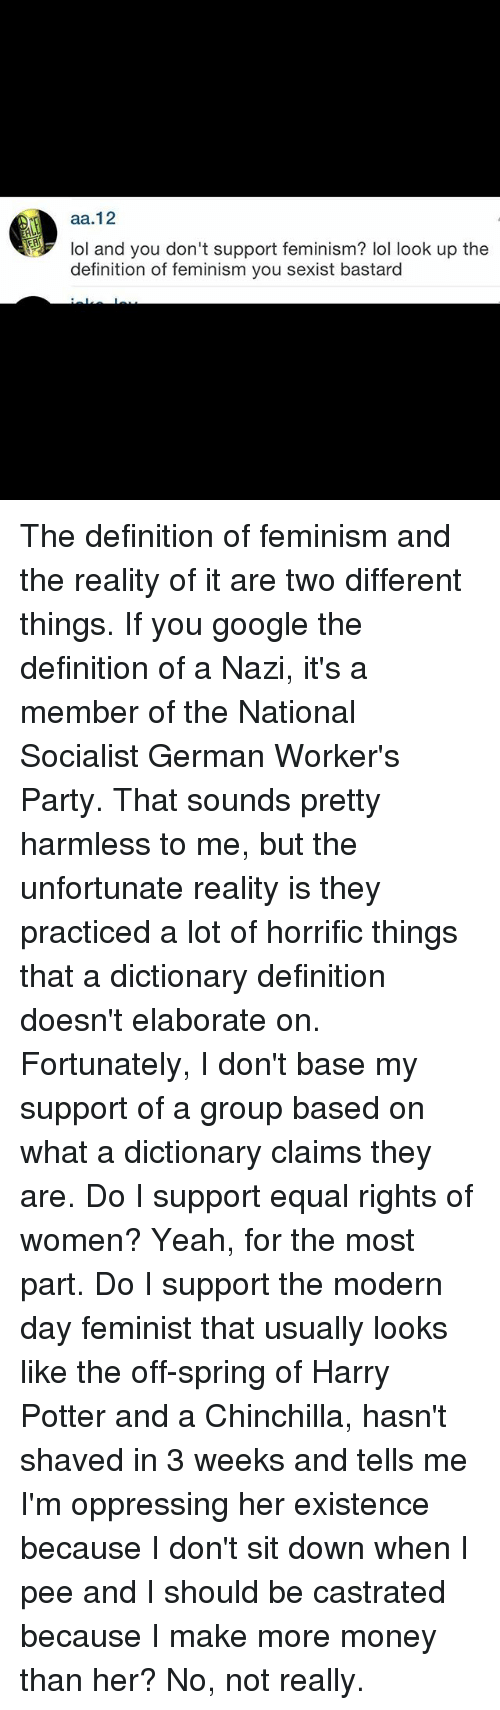 Feminism, Google, and Harry Potter: aa.12  101 and you don't support feminism? lol look up the  definition of feminism you sexist bastard The definition of feminism and the reality of it are two different things. If you google the definition of a Nazi, it's a member of the National Socialist German Worker's Party. That sounds pretty harmless to me, but the unfortunate reality is they practiced a lot of horrific things that a dictionary definition doesn't elaborate on. Fortunately, I don't base my support of a group based on what a dictionary claims they are. Do I support equal rights of women? Yeah, for the most part. Do I support the modern day feminist that usually looks like the off-spring of Harry Potter and a Chinchilla, hasn't shaved in 3 weeks and tells me I'm oppressing her existence because I don't sit down when I pee and I should be castrated because I make more money than her? No, not really.